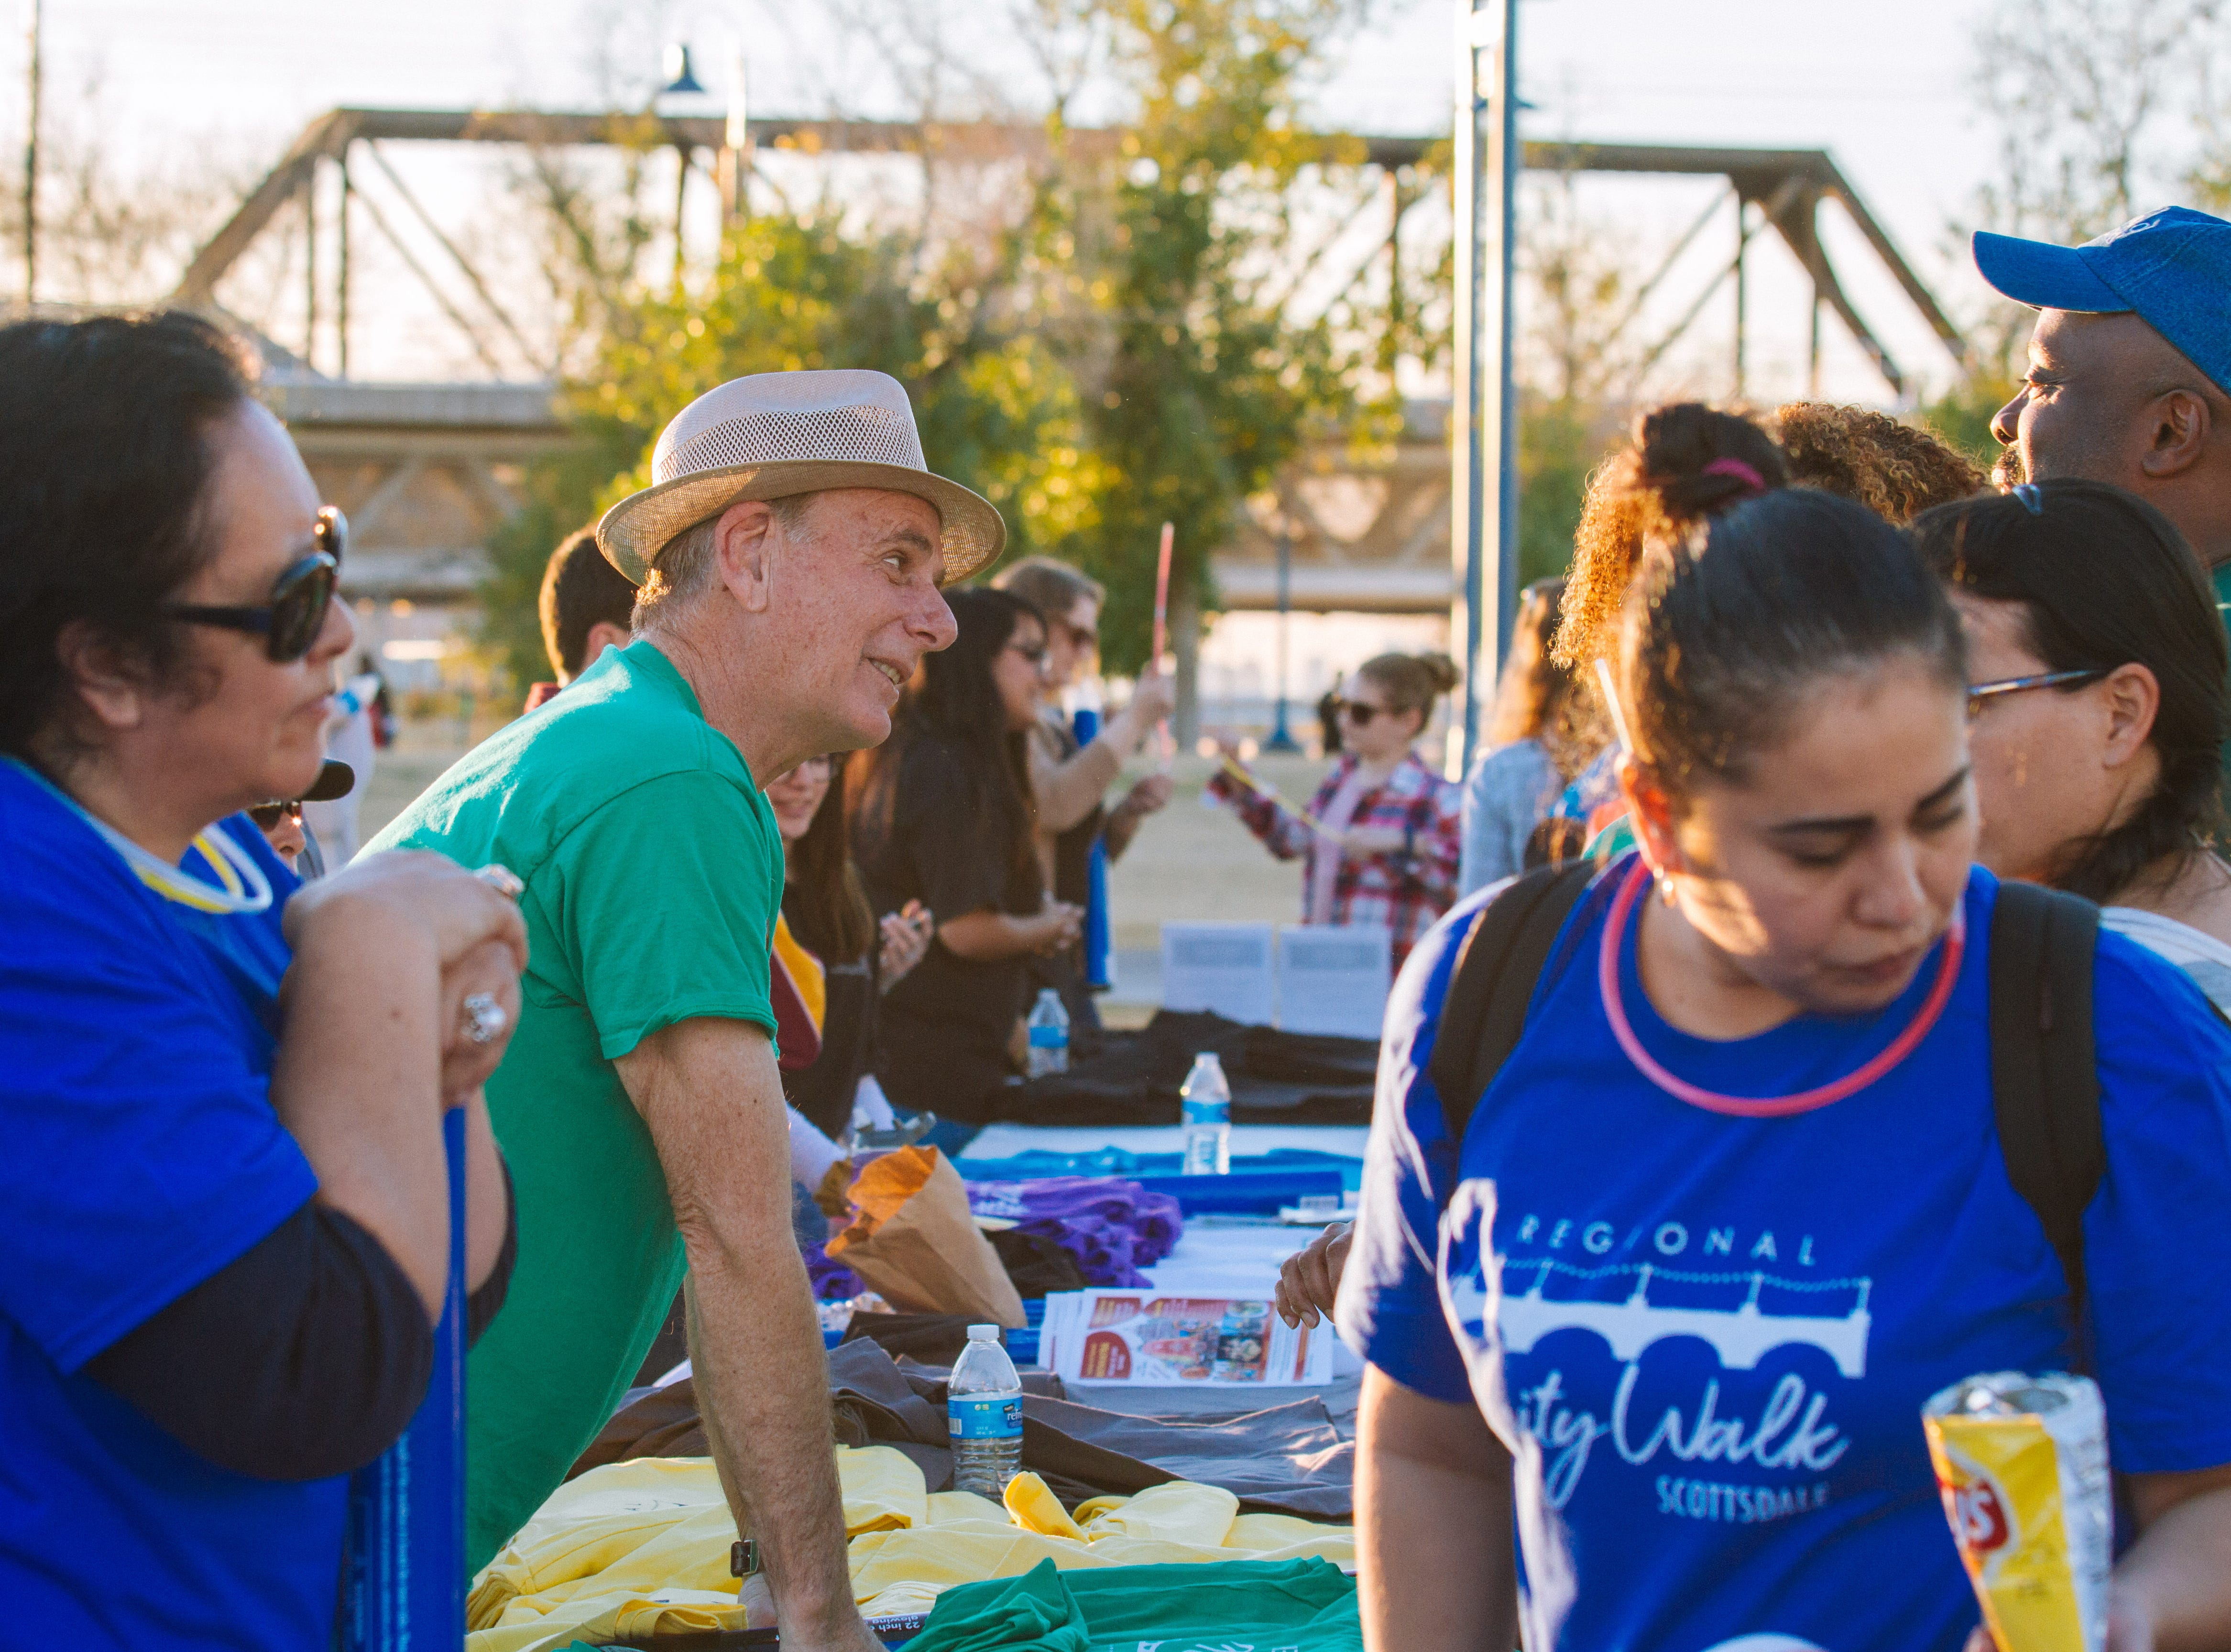 T-shirts are handed out to participants at the Unity Walk 2019 at Tempe Beach Park, in Tempe, Arizona on Saturday, Jan. 26, 2019.